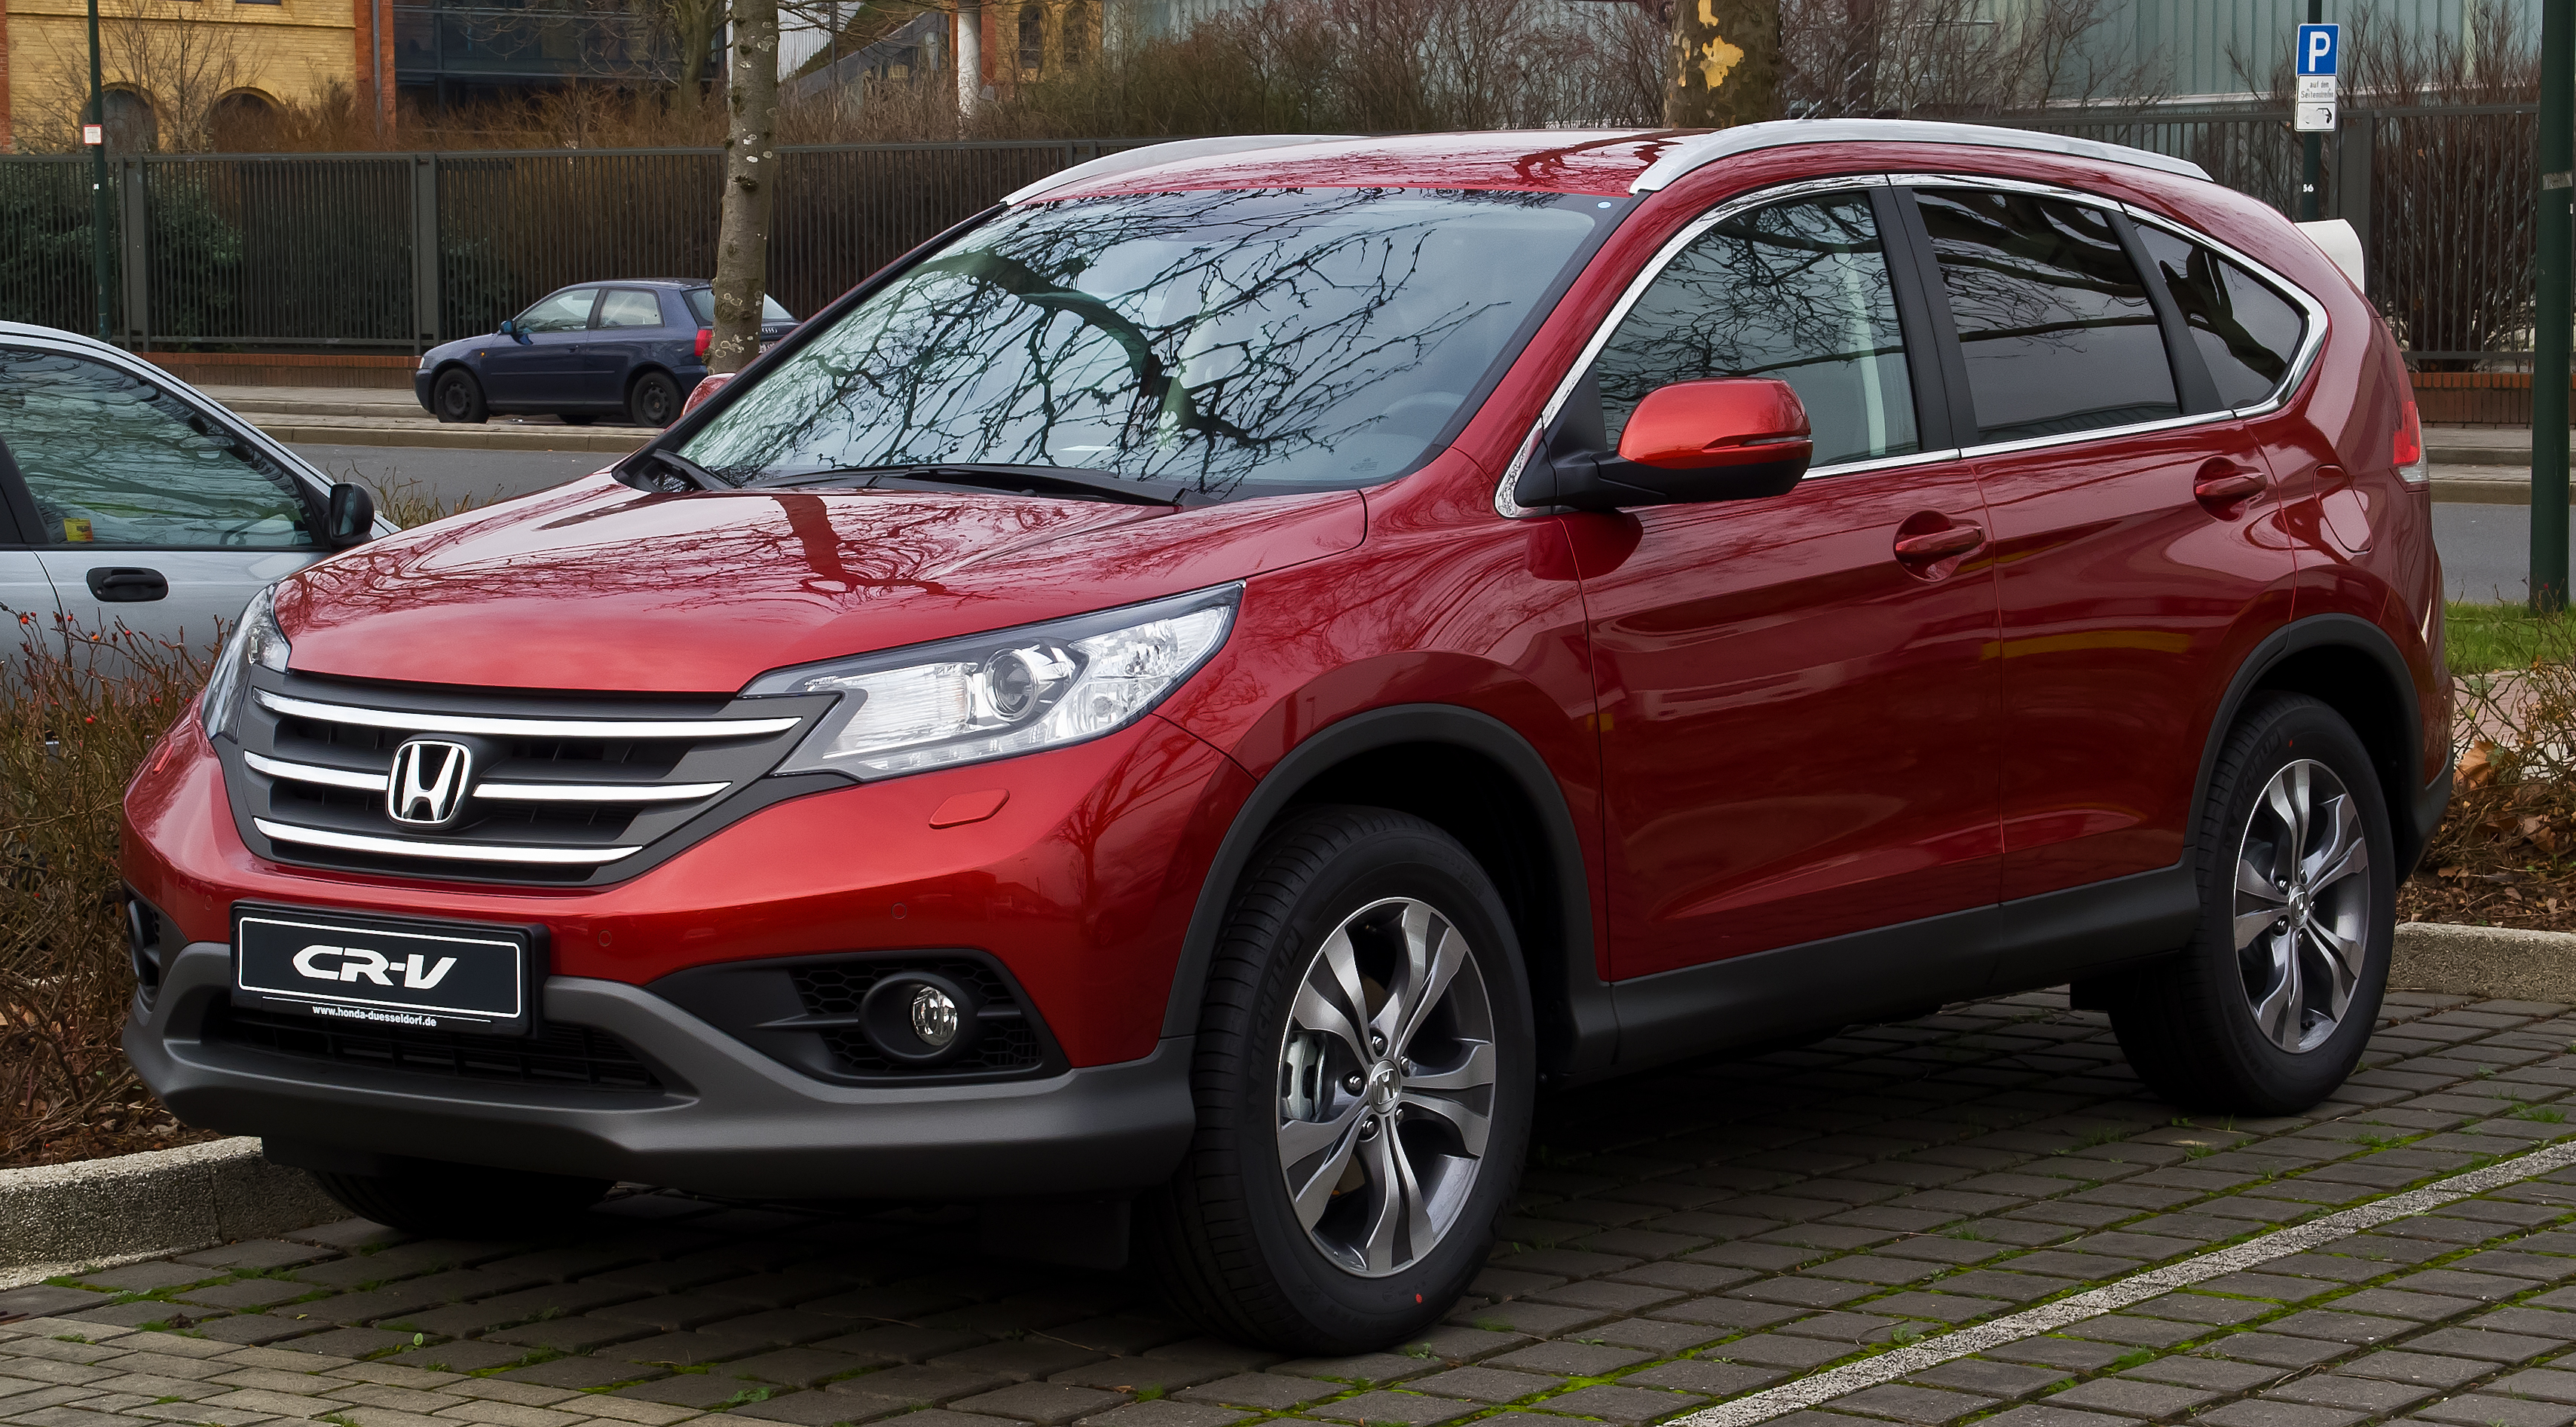 honda cr-v (fourth generation) - wikipedia